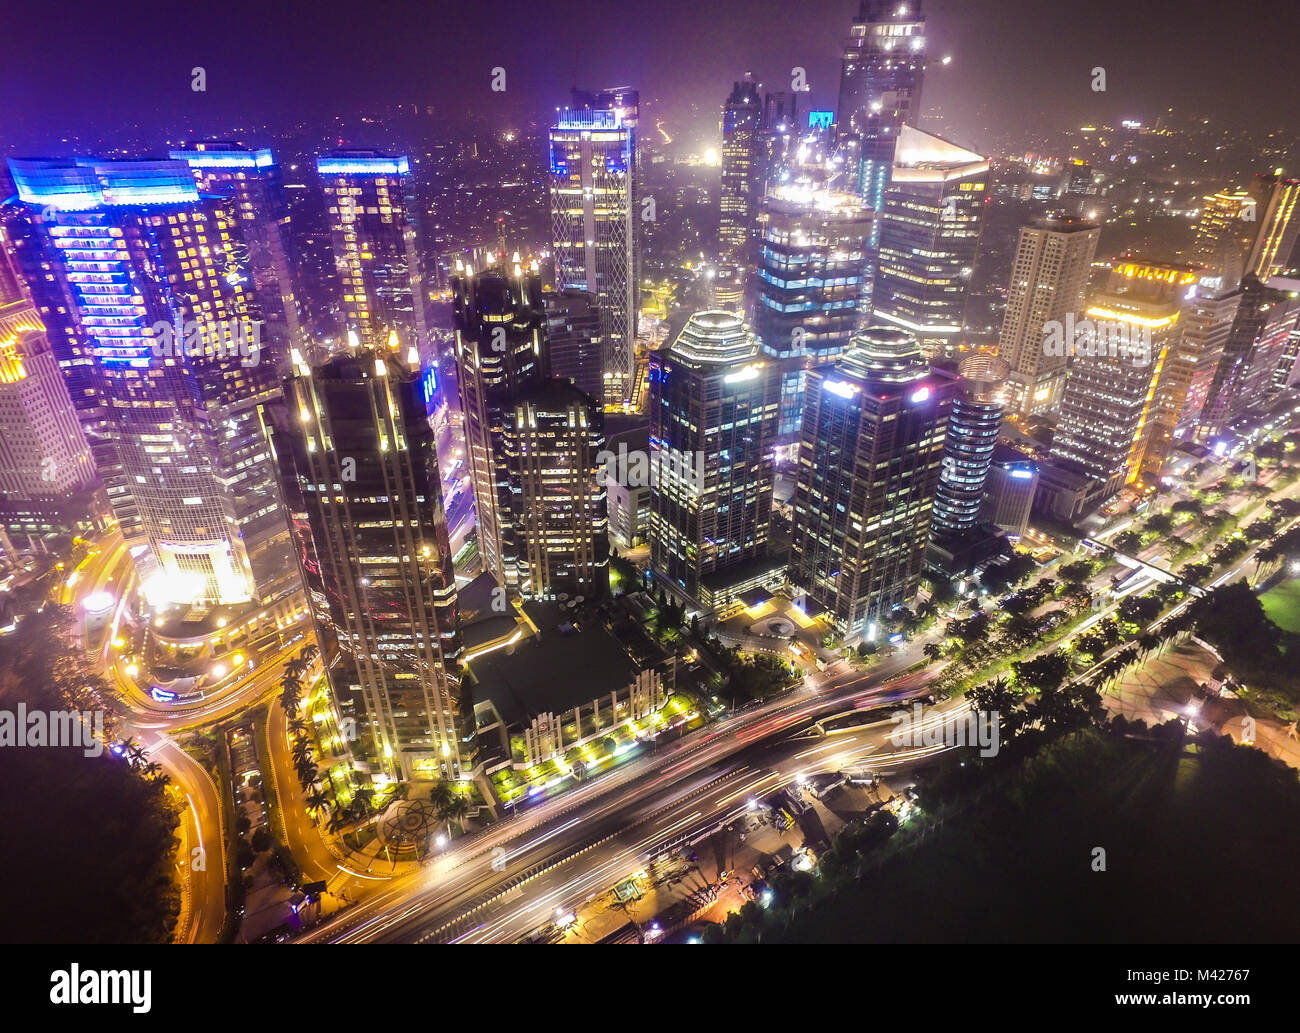 Business district of Jakarta city. - Stock Image